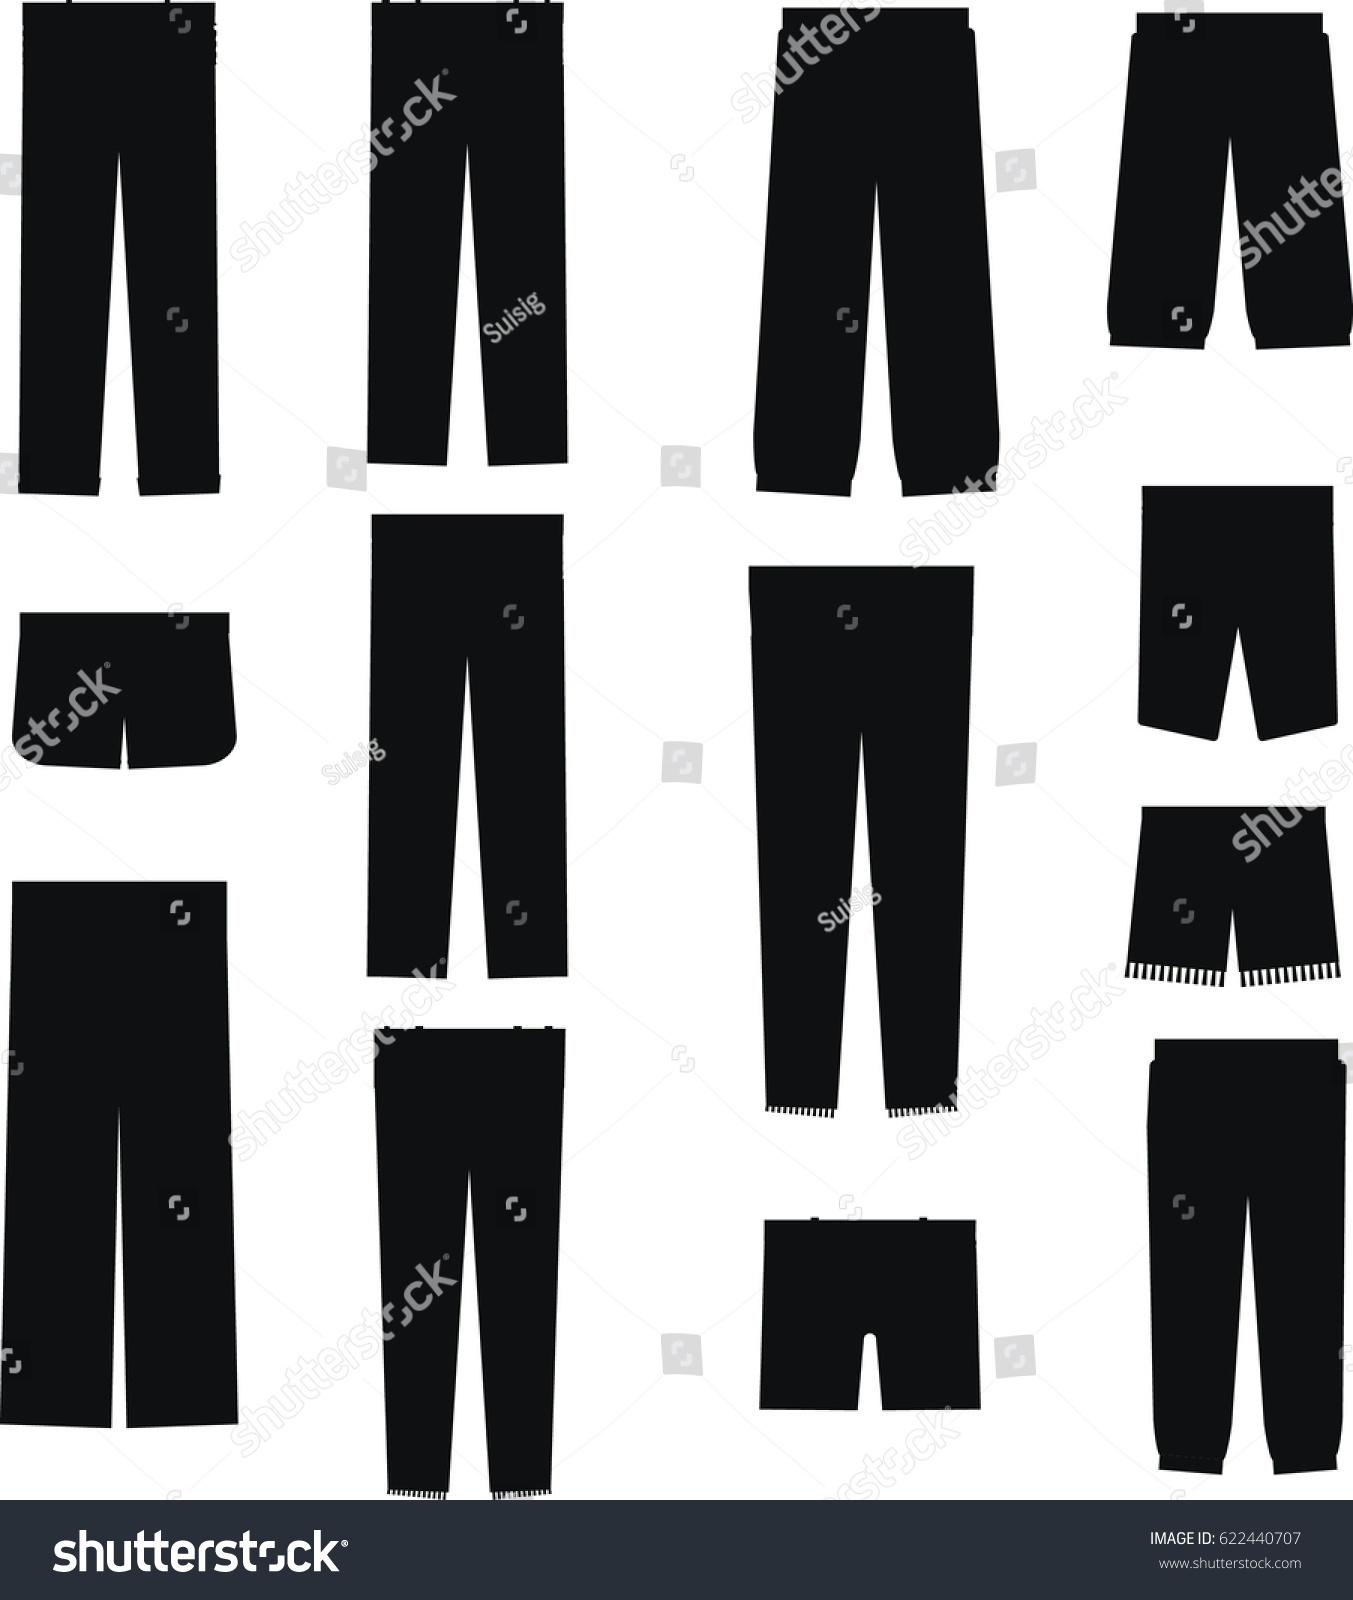 9eb990e4662 Stock vector set of men and women trousers jeans shorts fashion black  silhouette icons isolated jpg